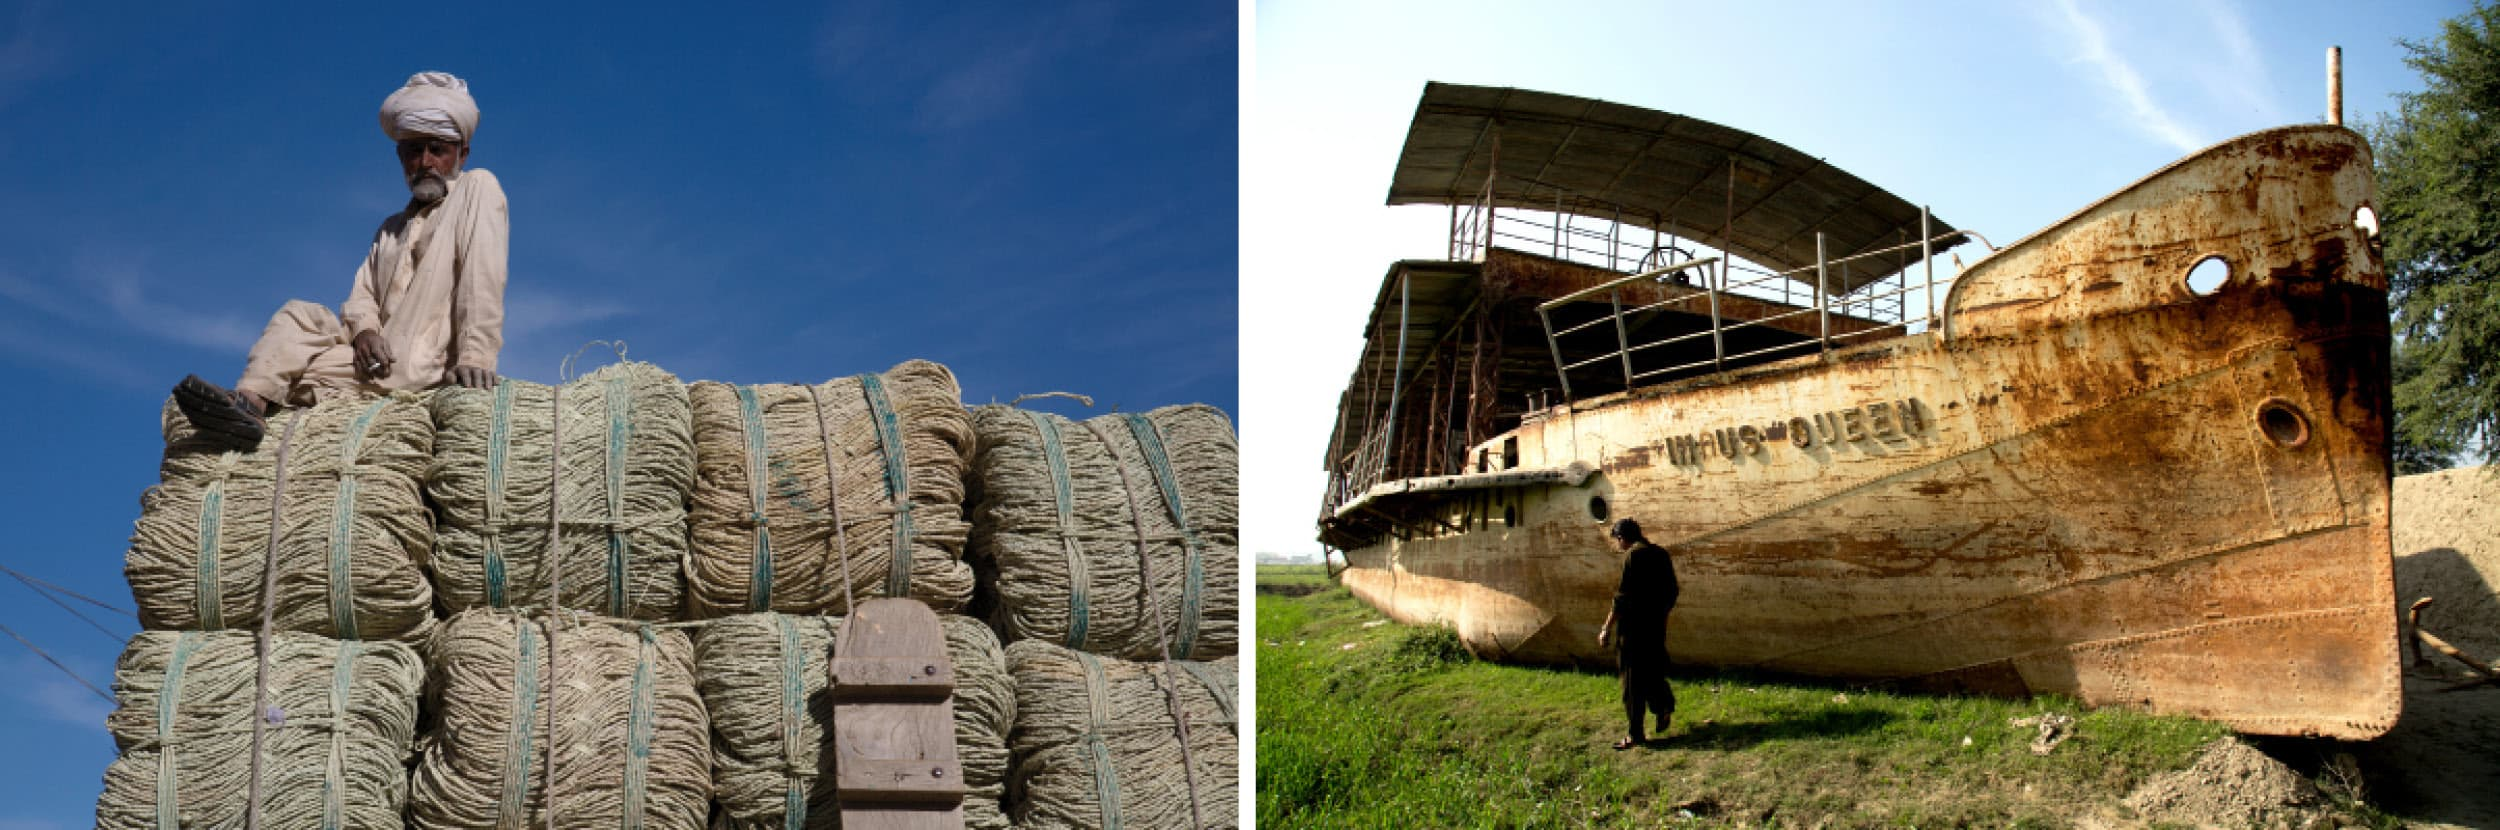 (Left) A man sits atop ropes made of date palm leaves in Fort Munro; (Right) An abandoned boat at the bank of the Indus River in Kot Mithan